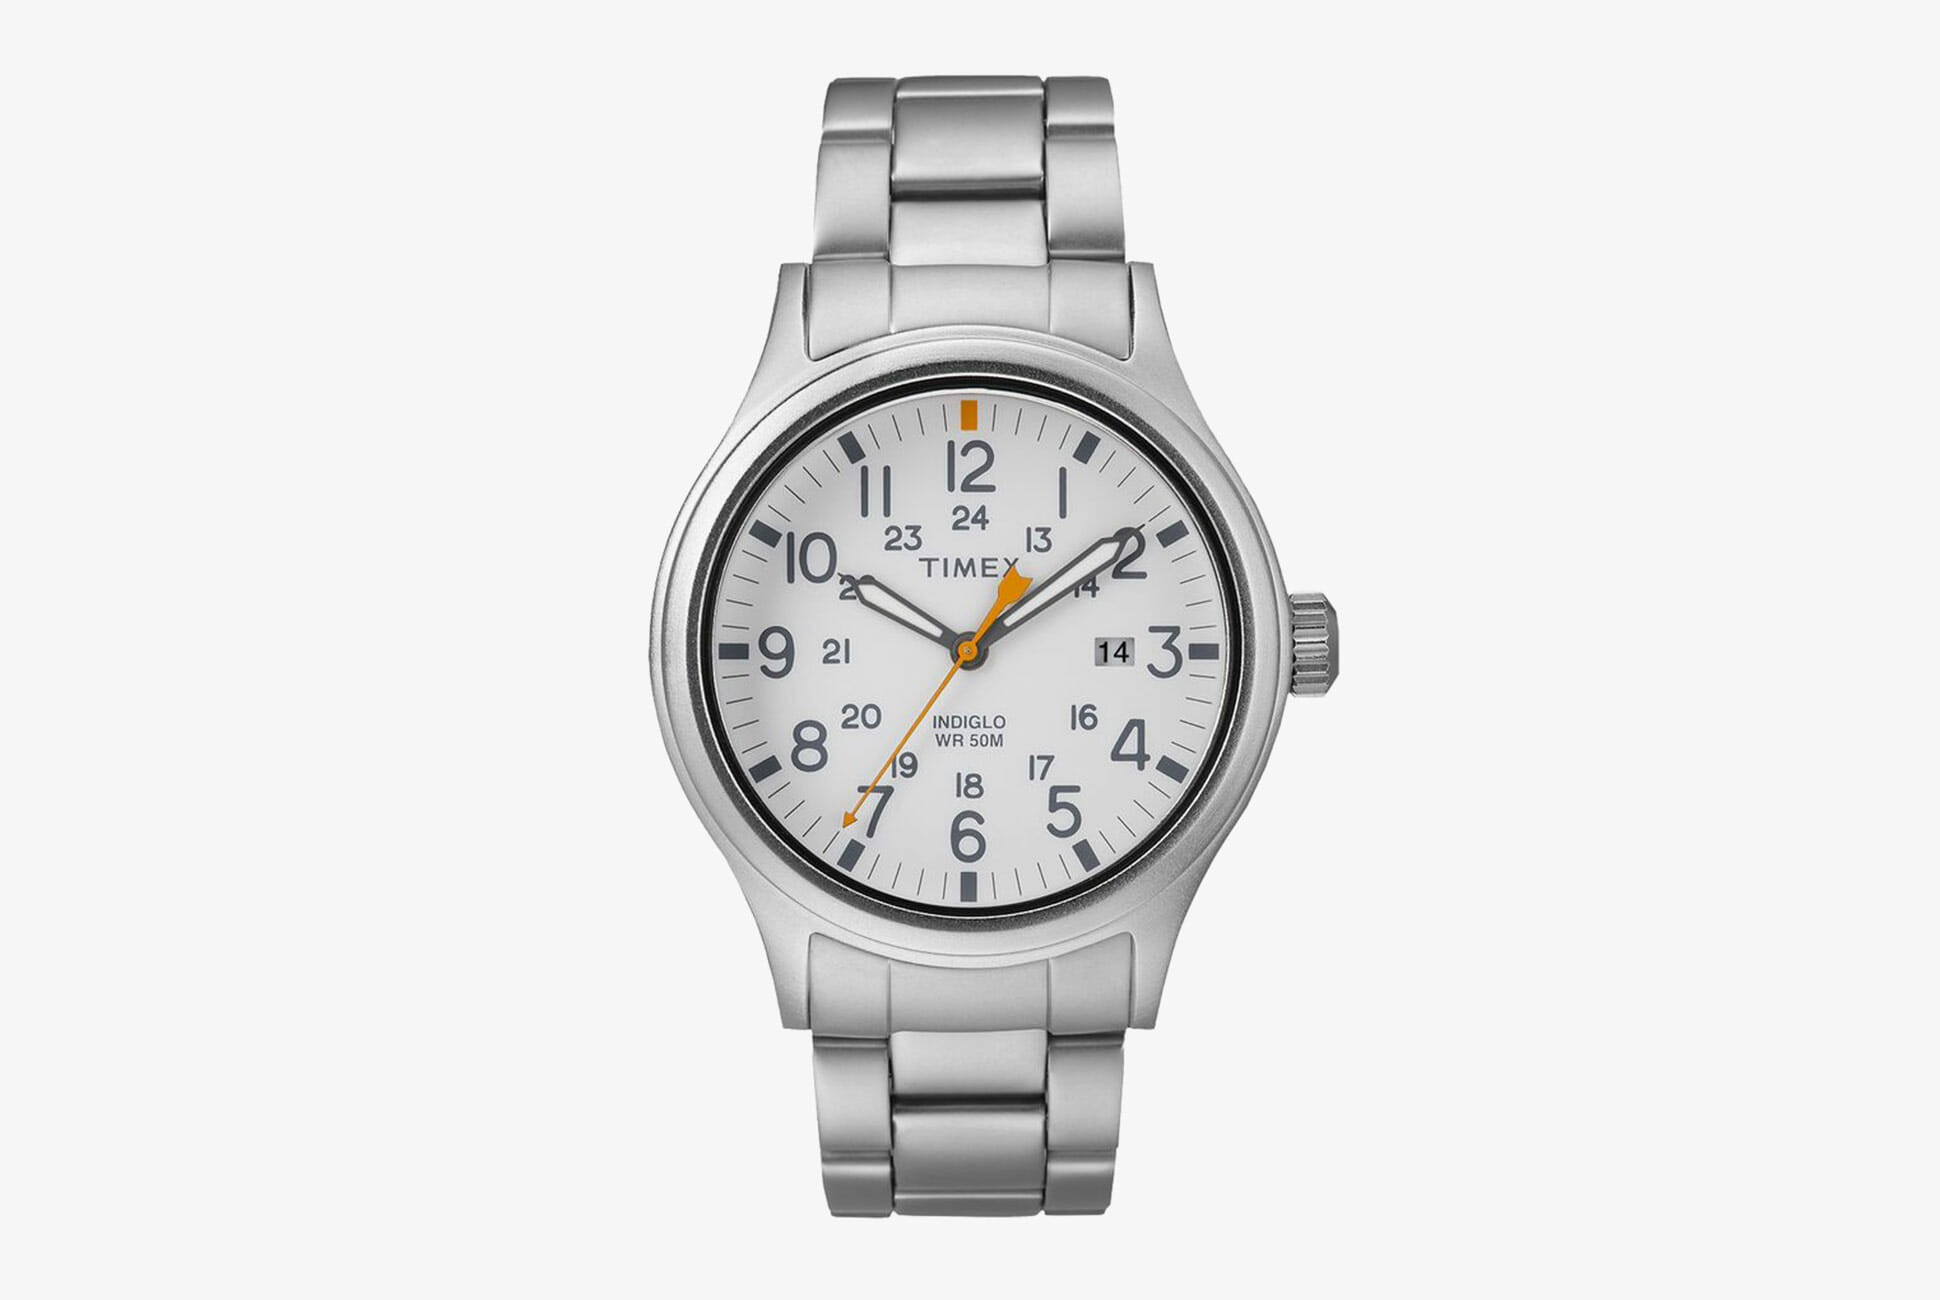 2d31a22656 Save 50%: Having made numerous field watches in the 1980s, it isn't  surprising that Timex has called upon these original pieces in designing  many of its ...